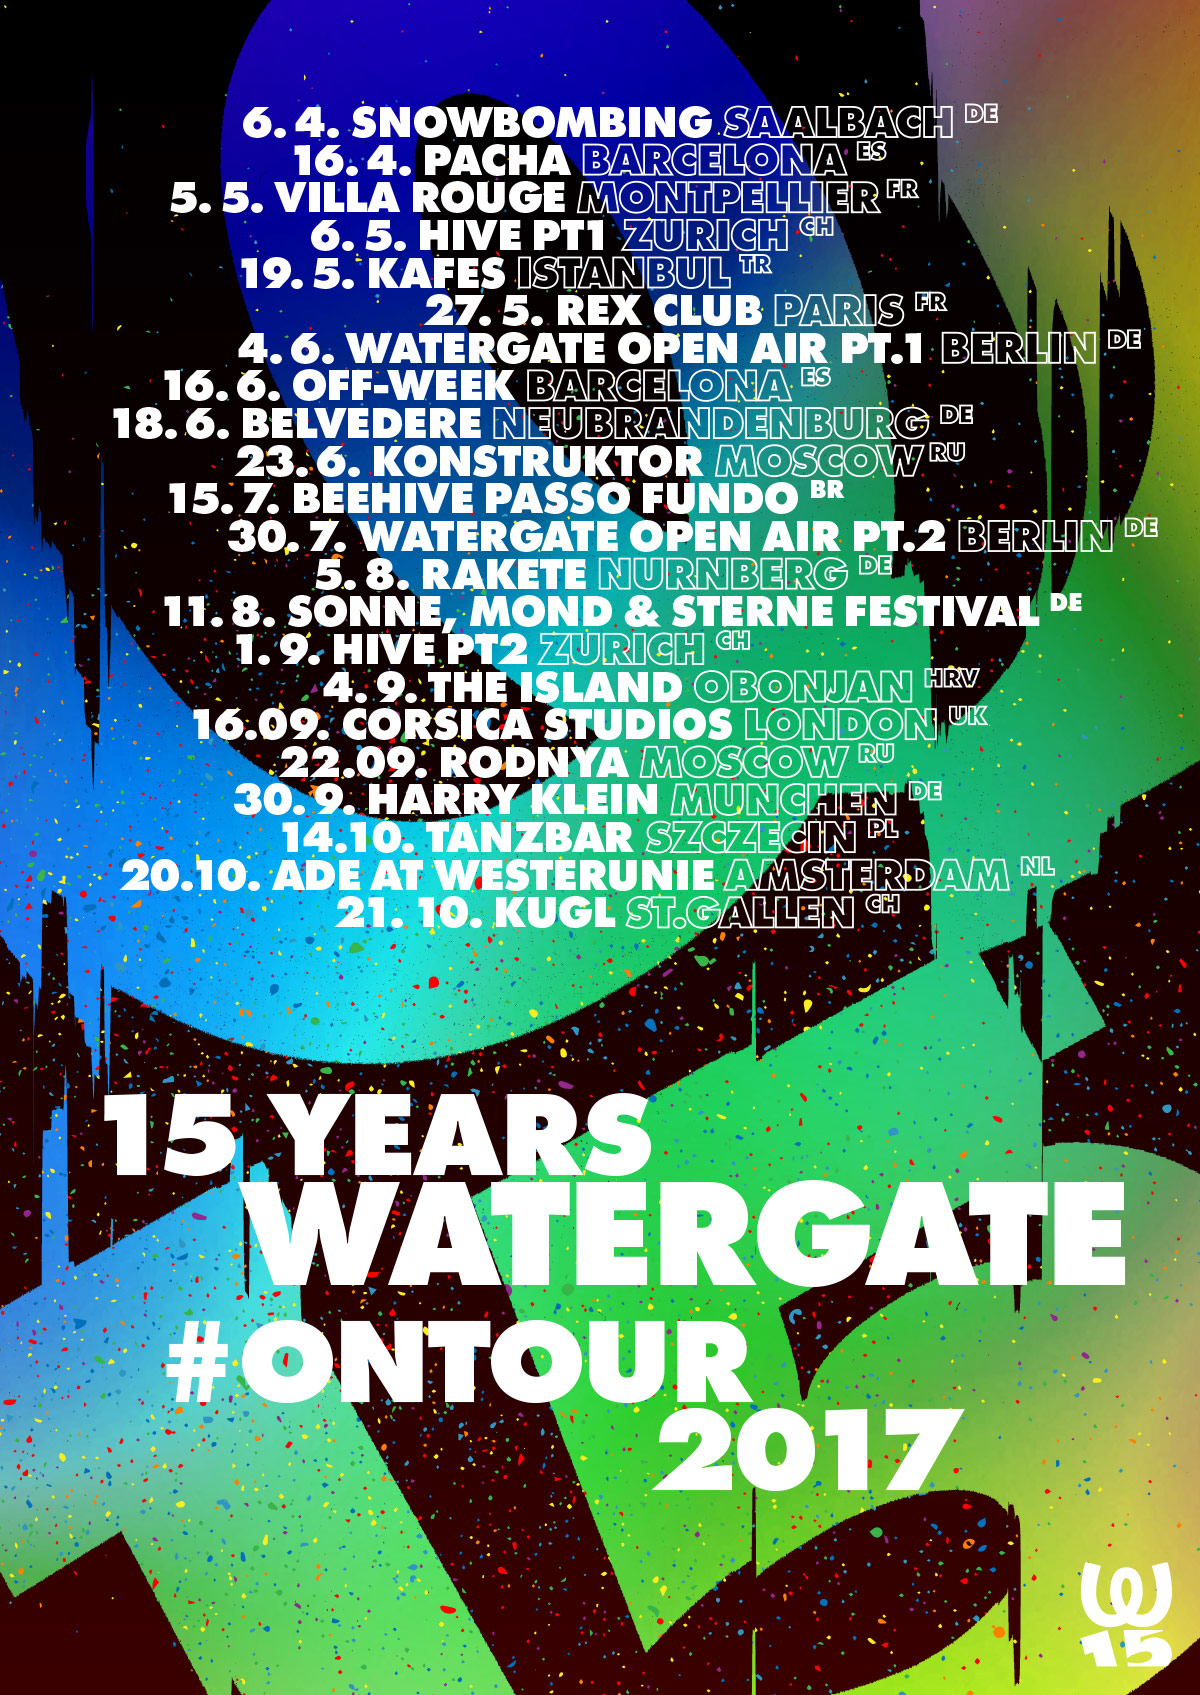 15 Years on Tour